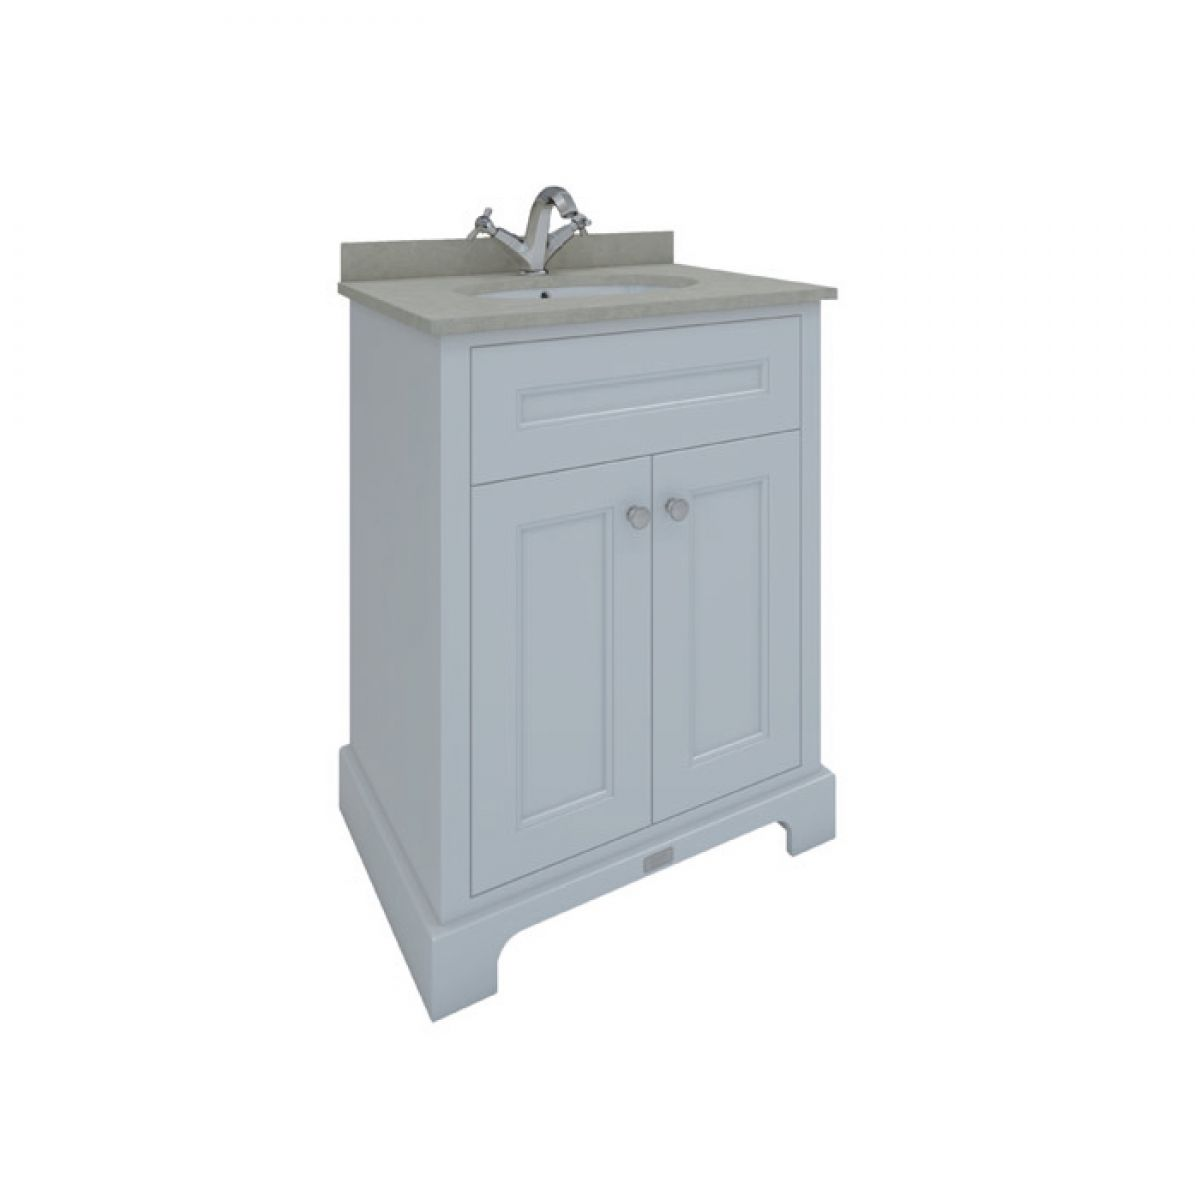 RAK Washington White Vanity Unit with Grey Countertop 600mm